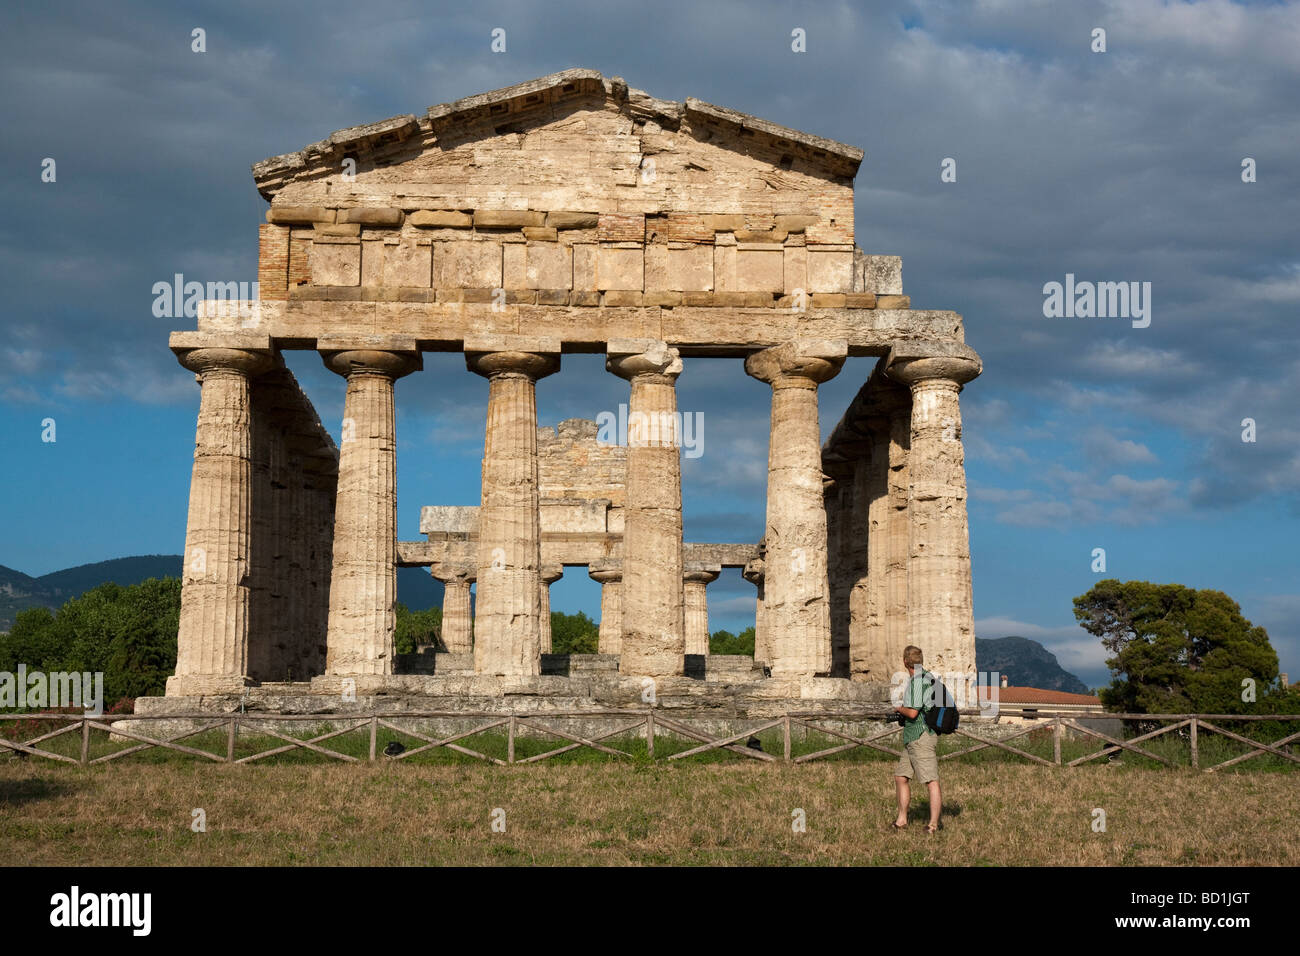 A man admires the Temple of Ceres at Paestum, Italy, viewed from the west. - Stock Image